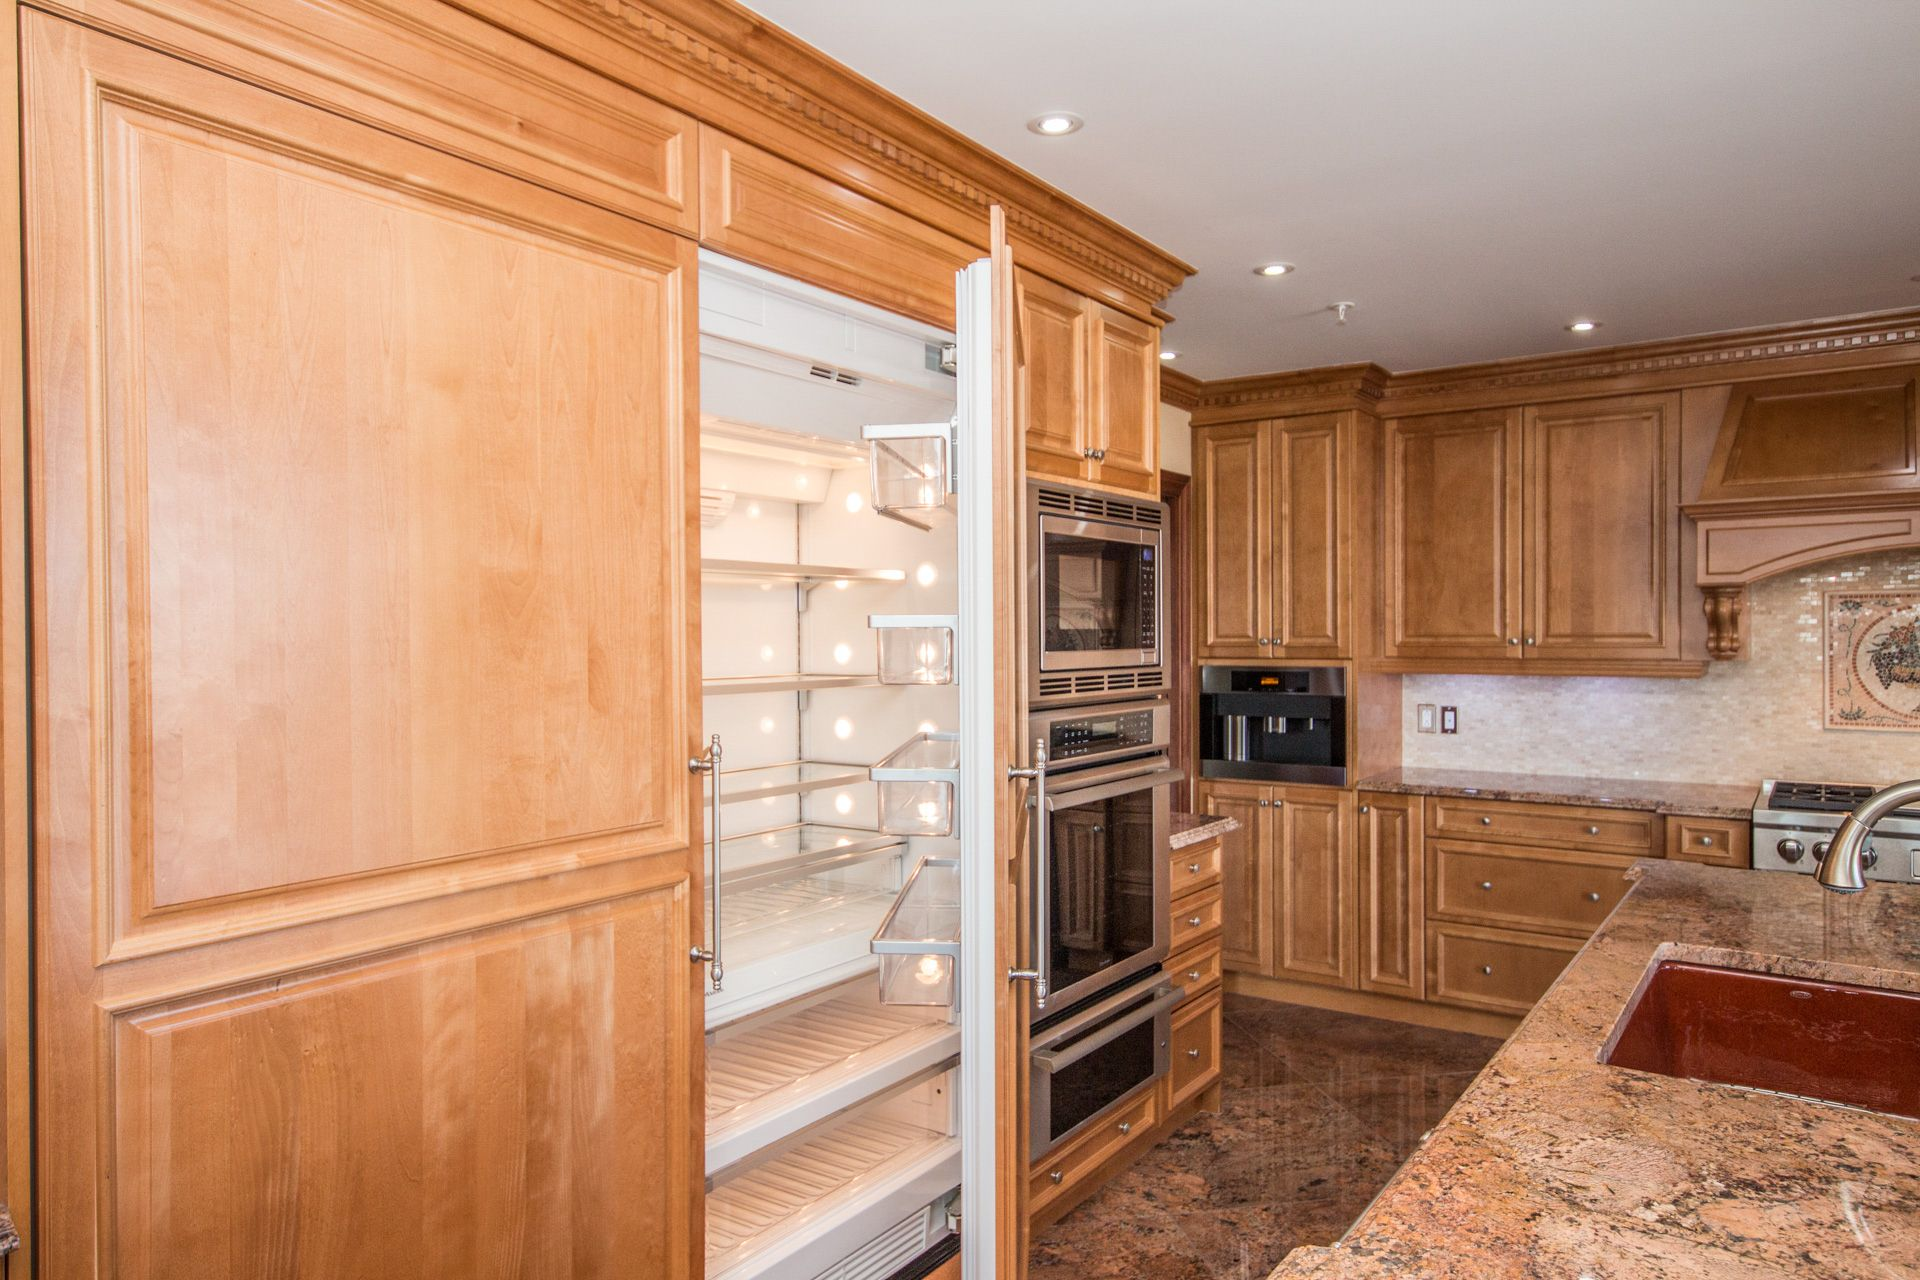 Crotone Kitchens Kcma Certified Quality Cabinets Quality Cabinets Kitchen Cabinets Kitchen Cabinet Manufacturers